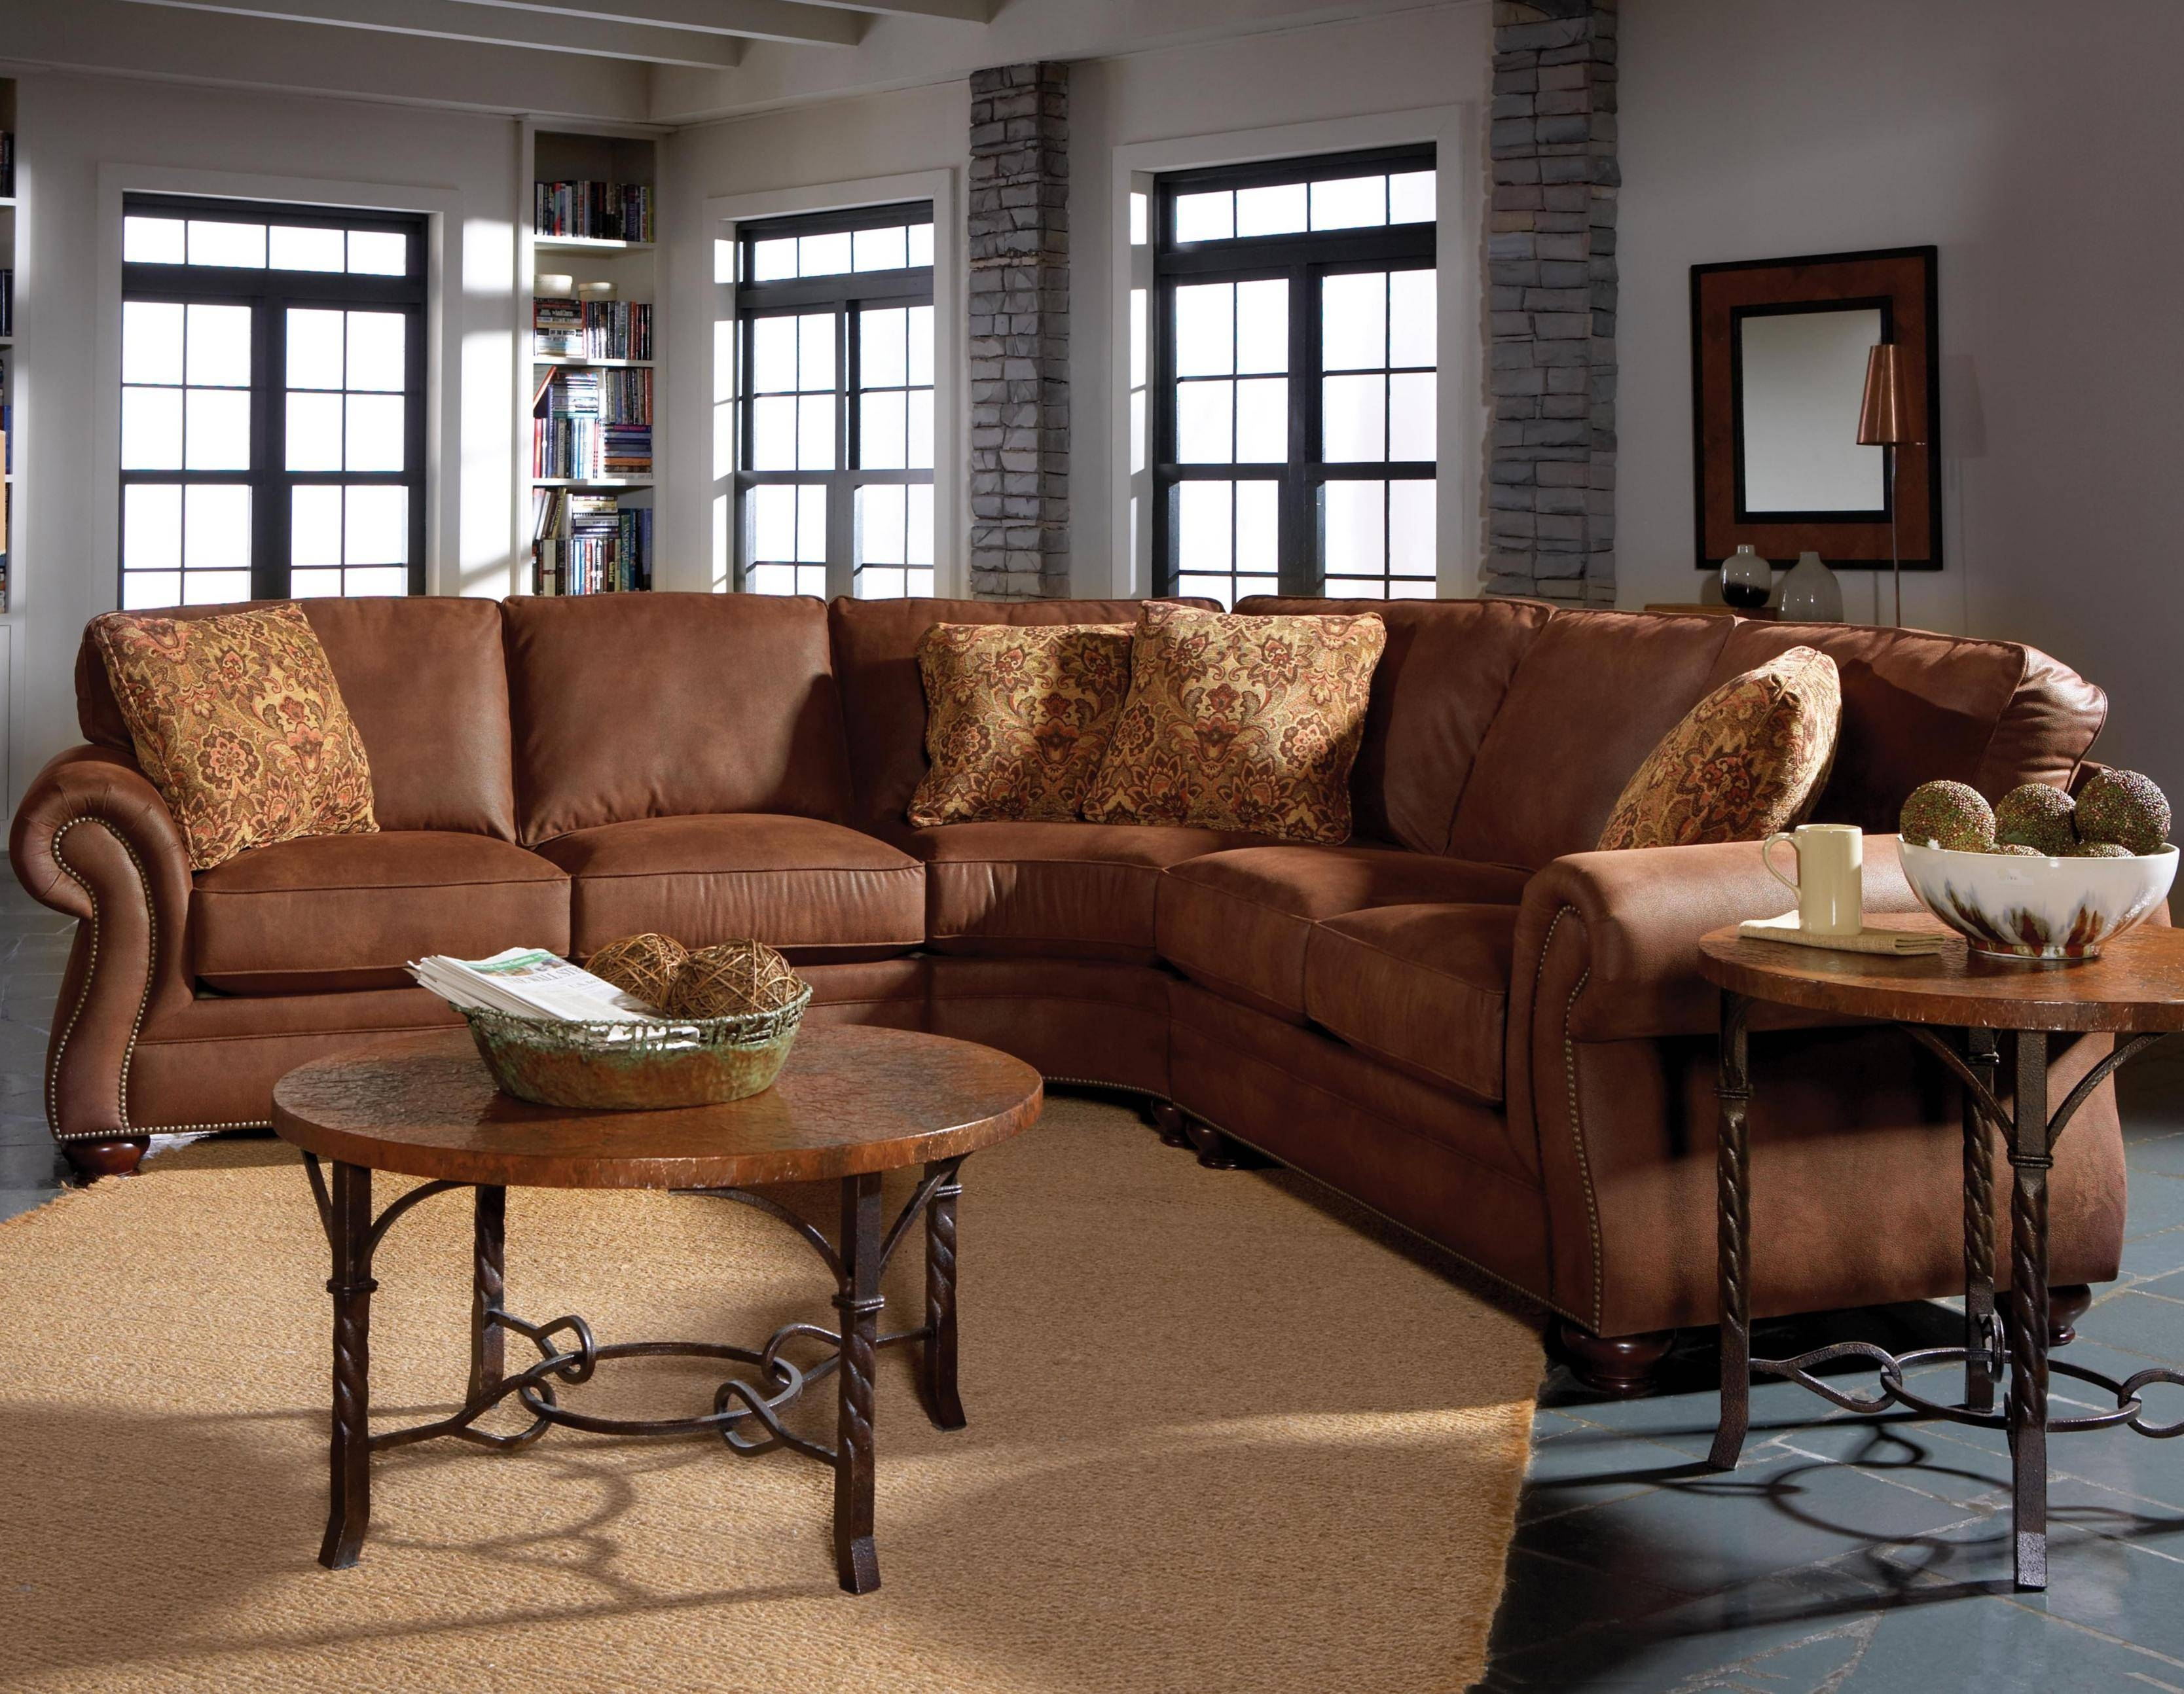 Broyhill Furniture Laramie 3 Piece Wedge Sectional Sofa - Wayside with Broyhill Sectional Sofa (Image 9 of 30)